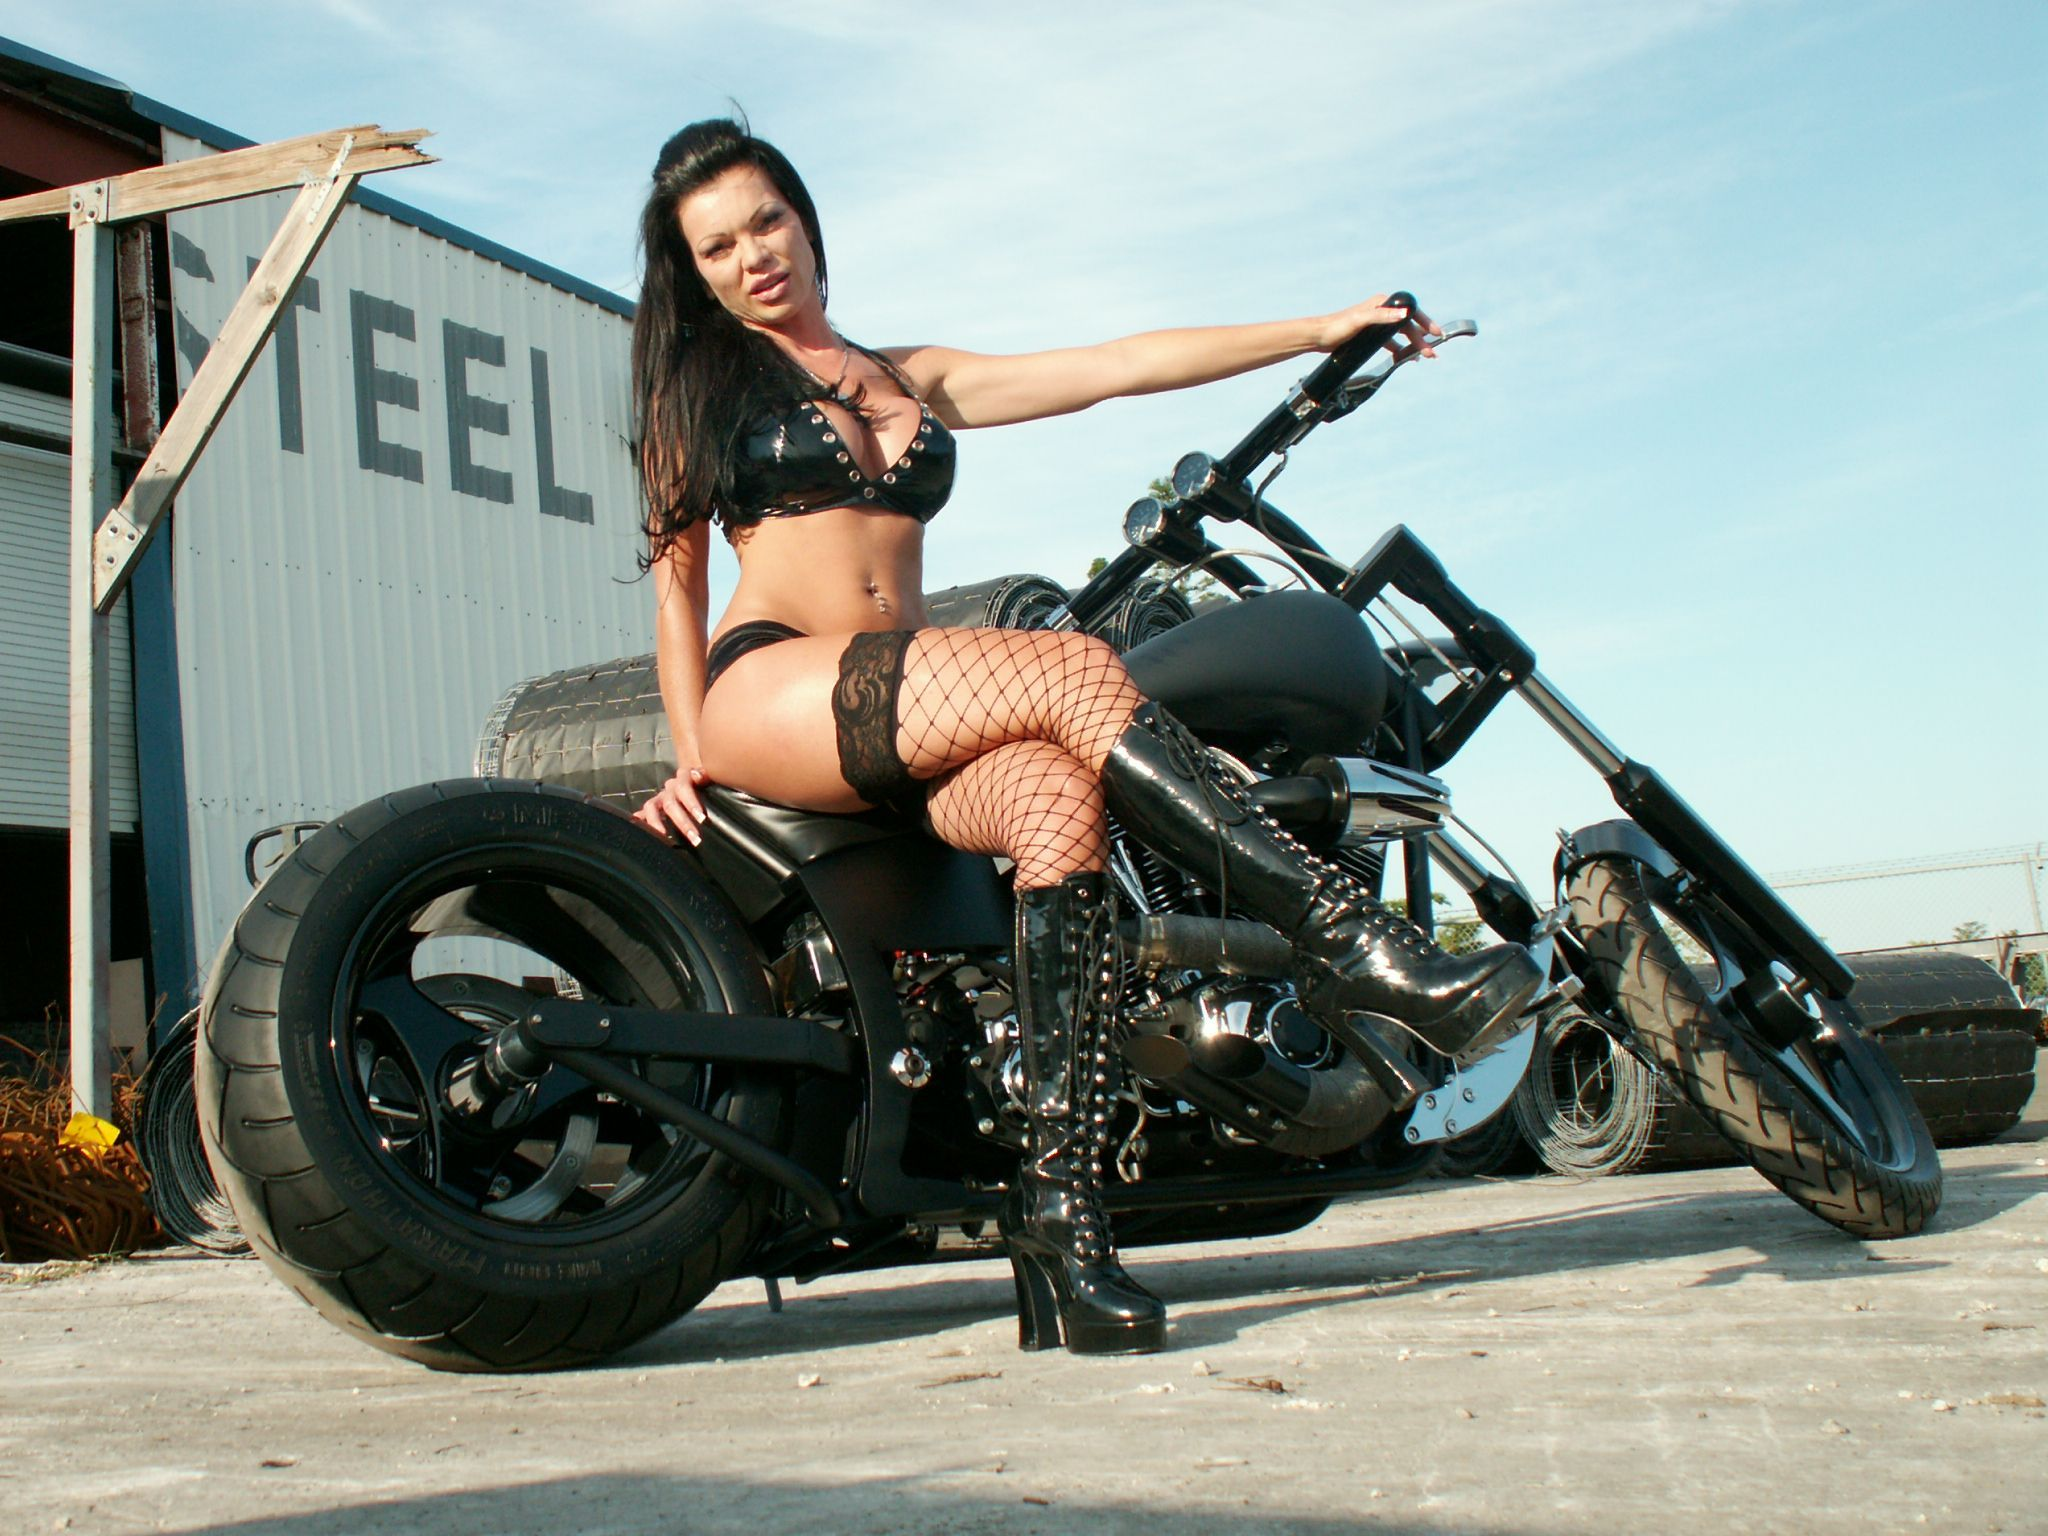 choppers Hot girls on